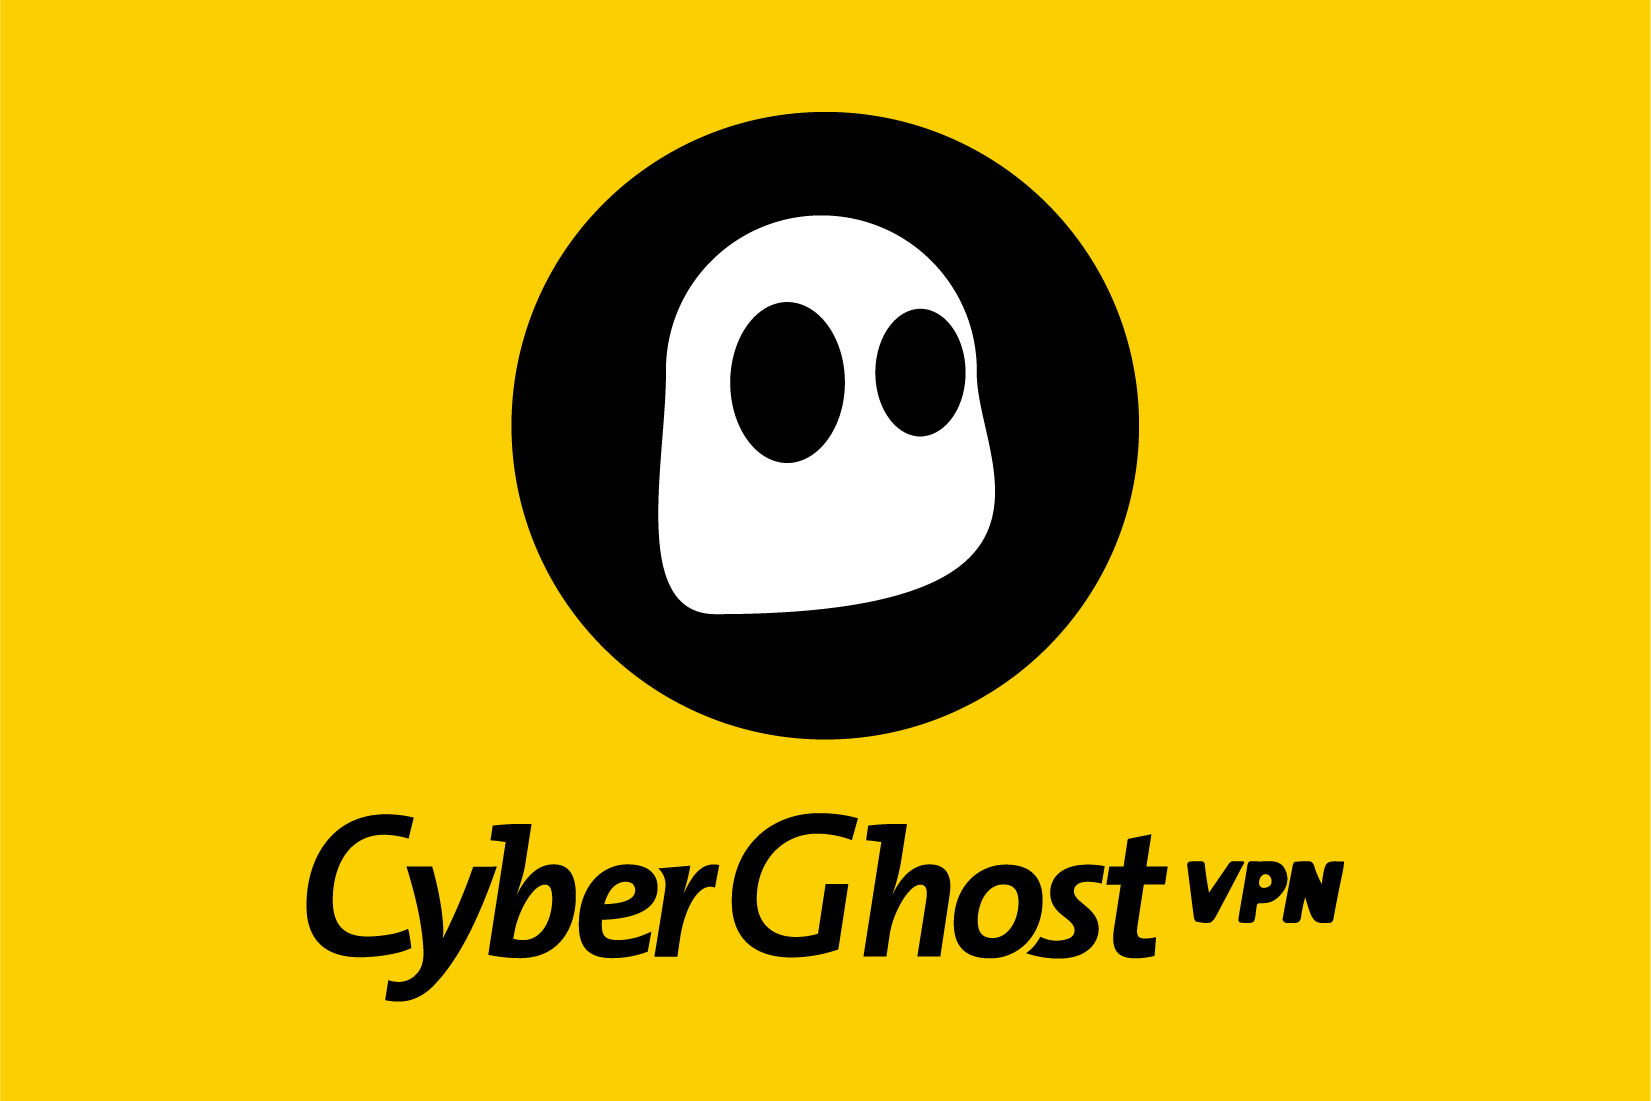 CyberGhost VPN Black Friday – Get 83% off + 3 Extra Months free